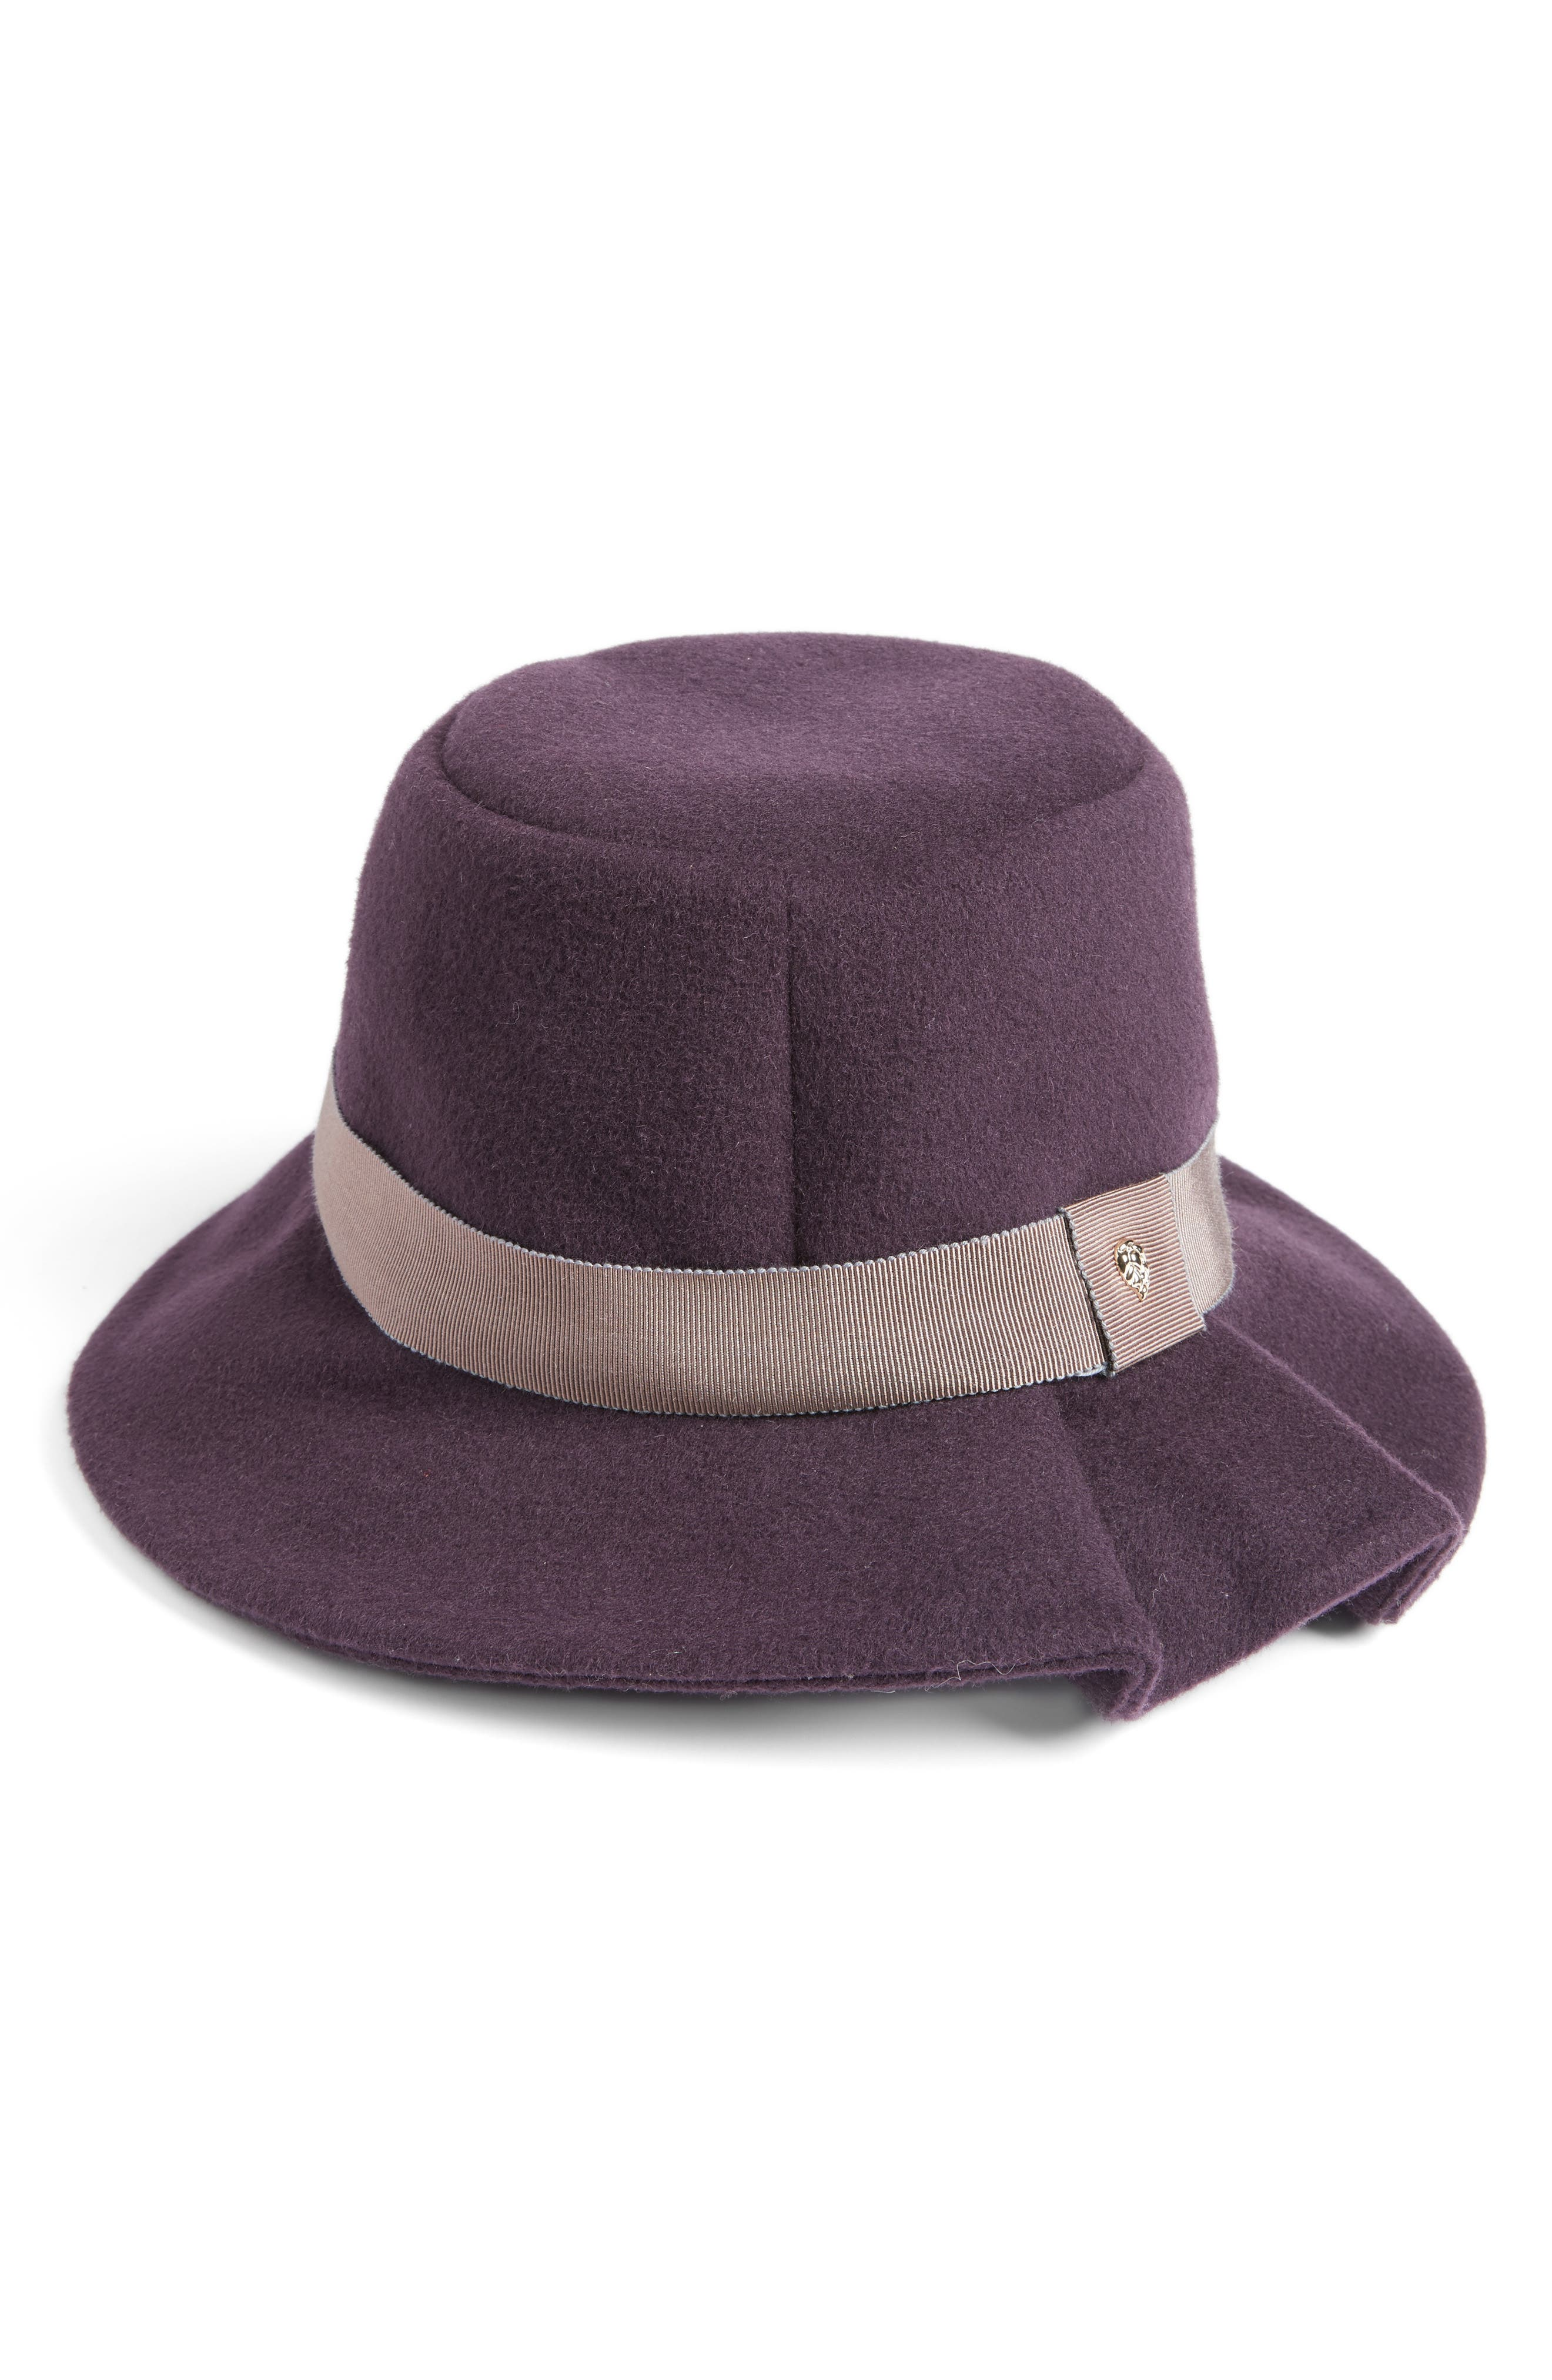 Luxe Tapered Bucket Hat,                         Main,                         color, 900